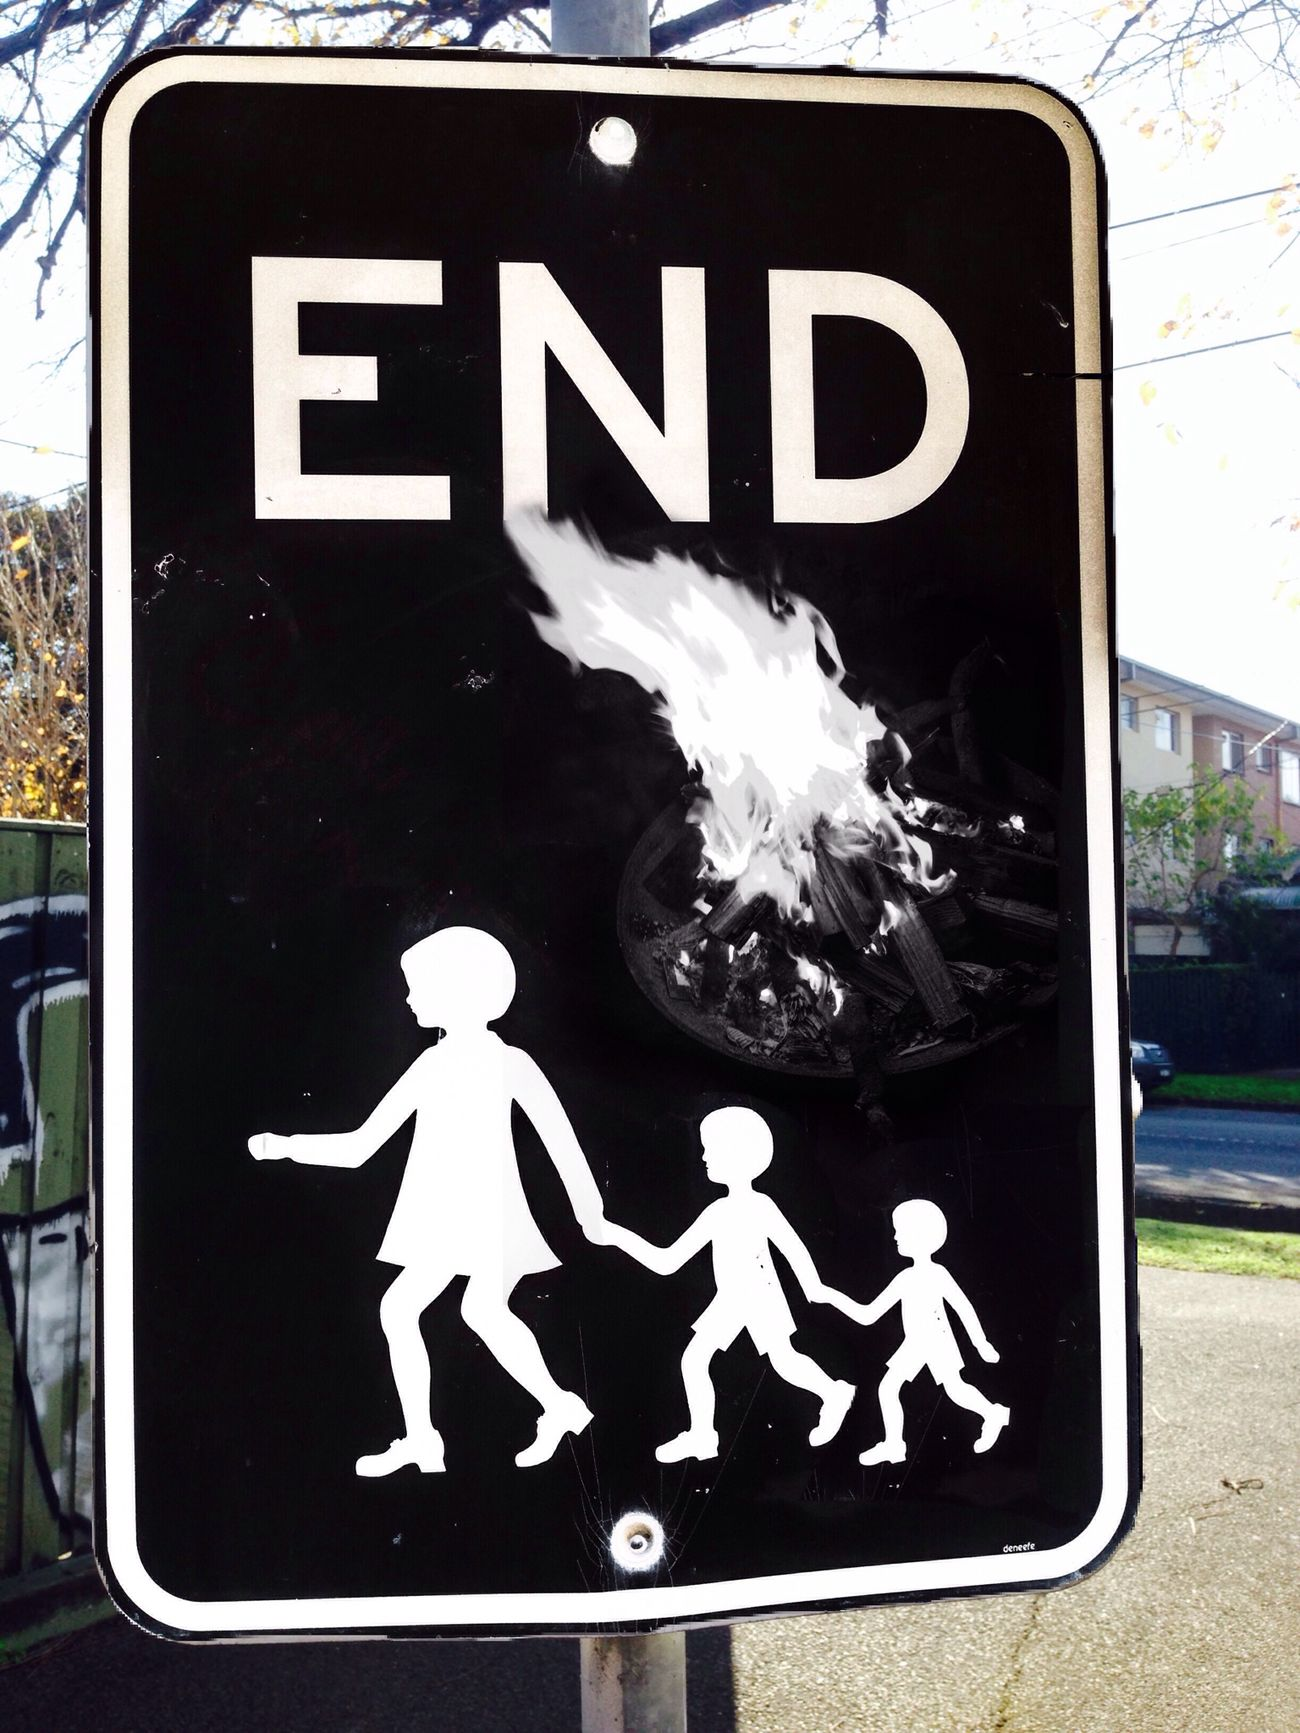 End 0.2